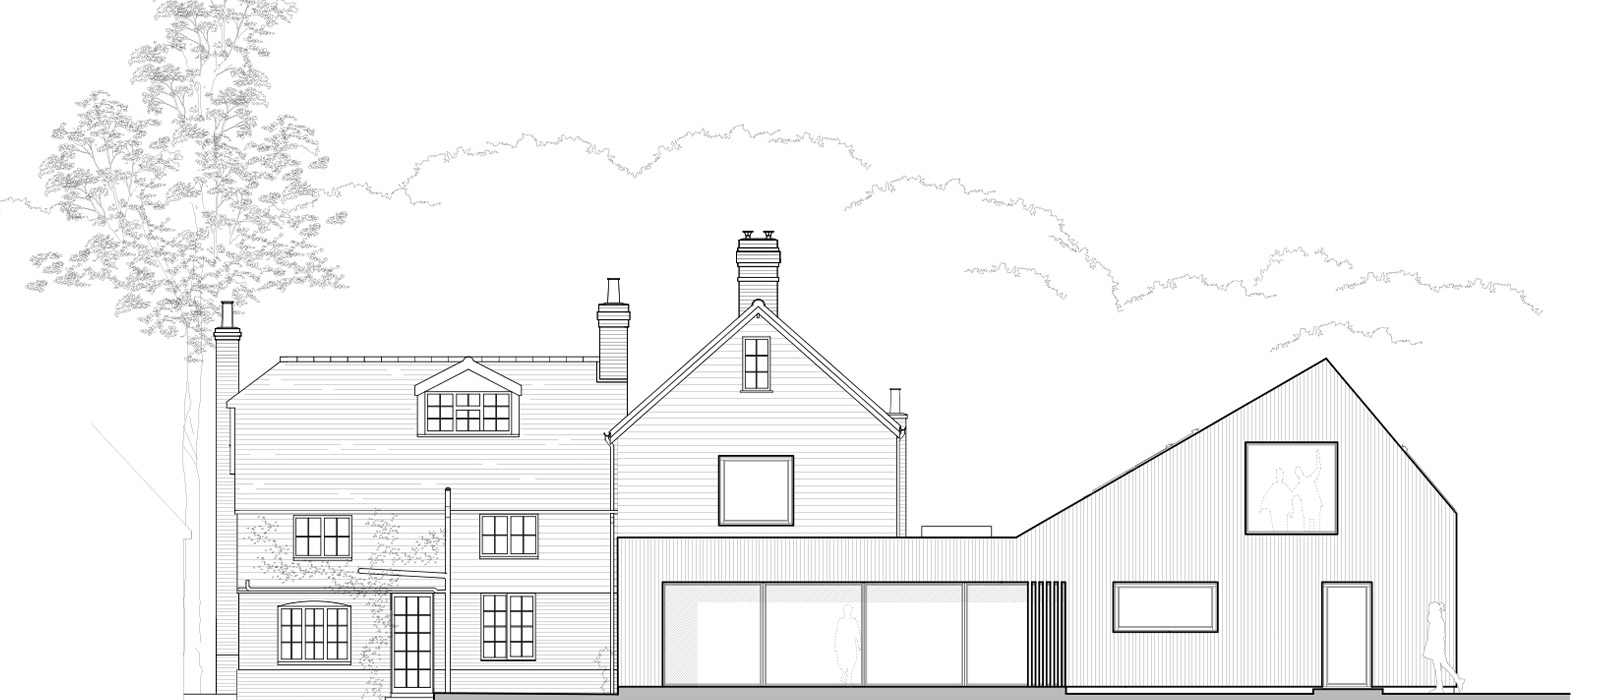 gyd-architecture | Rear elevation of approved plans